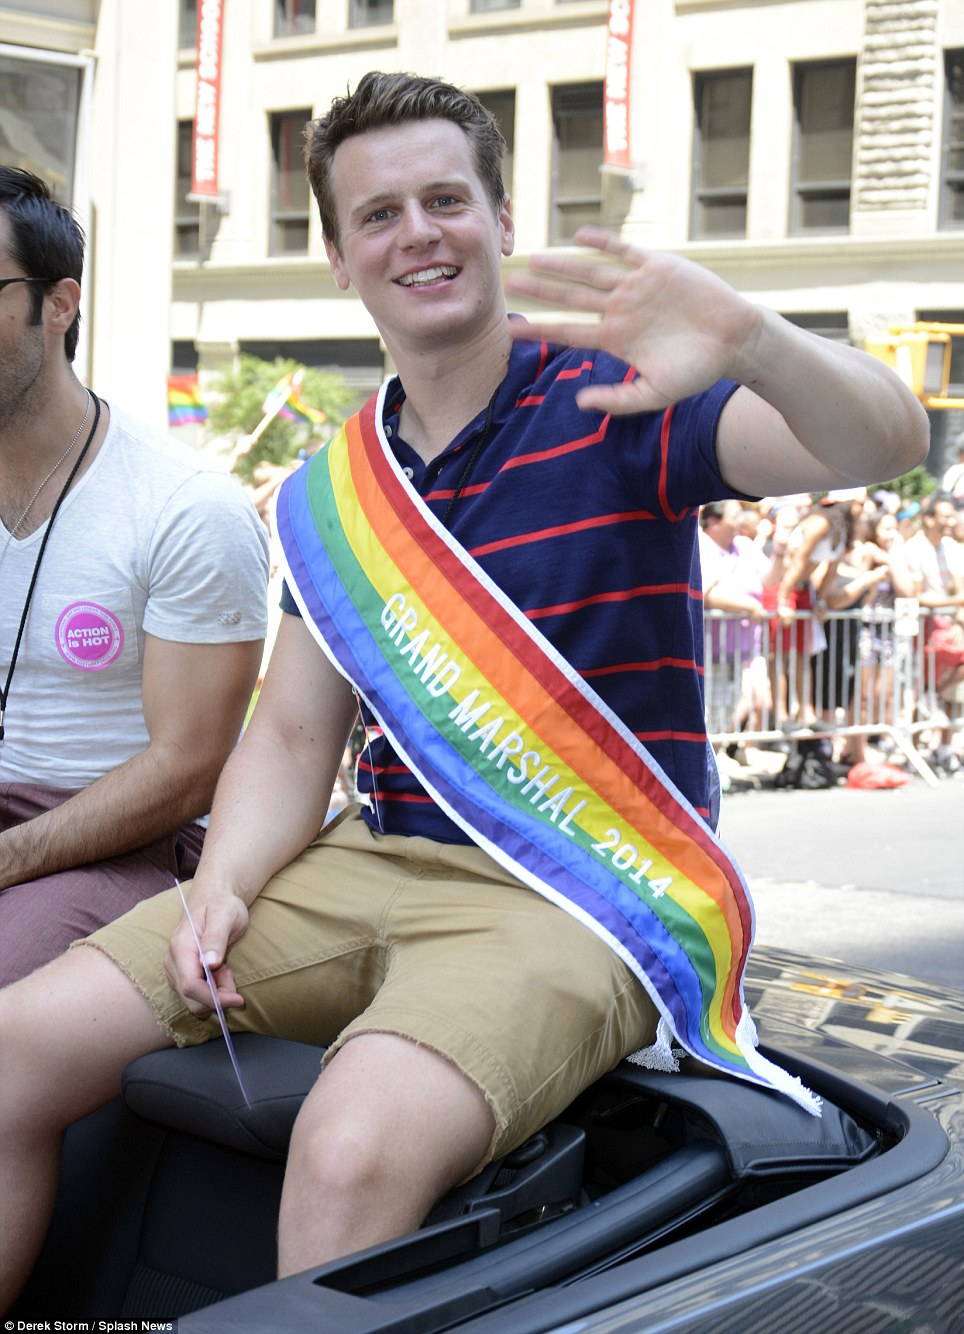 Star: Jonathan Groff, who appears in the HBO series looking, serves as one of three grand marshals in New York